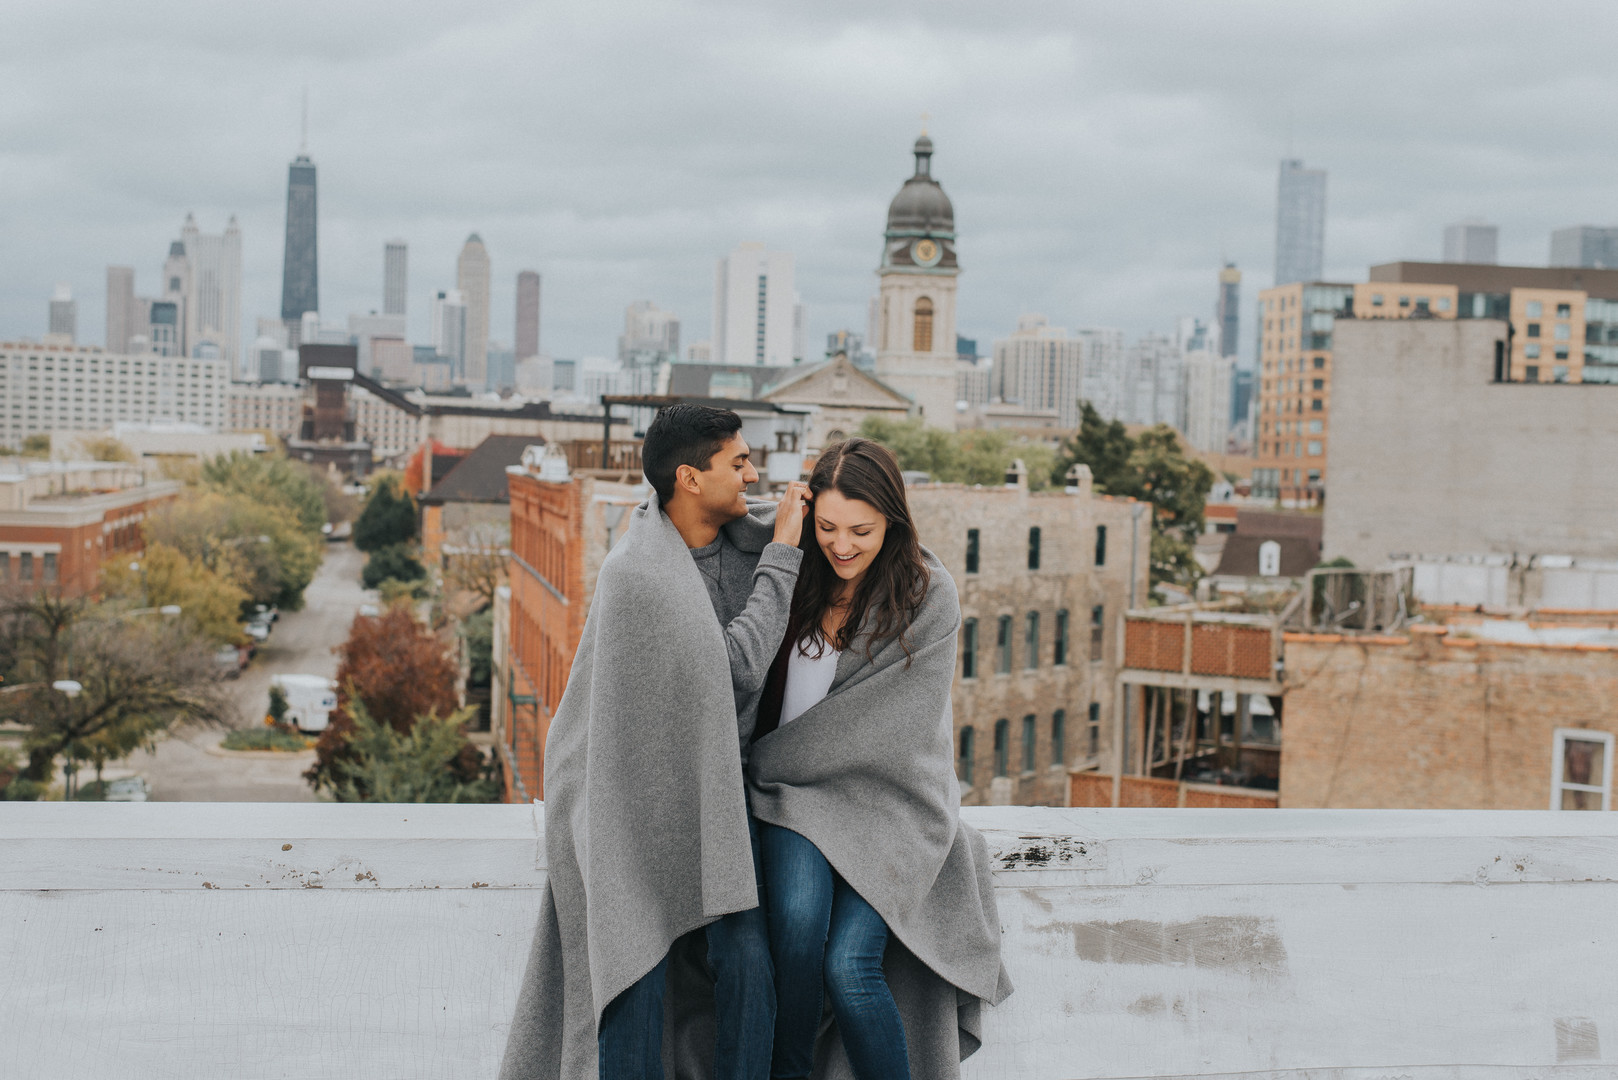 Chicago rooftop and Millennium Park engagement session captured by Kendra Lynece Photography. See more engagement photo ideas at CHItheeWED.com!